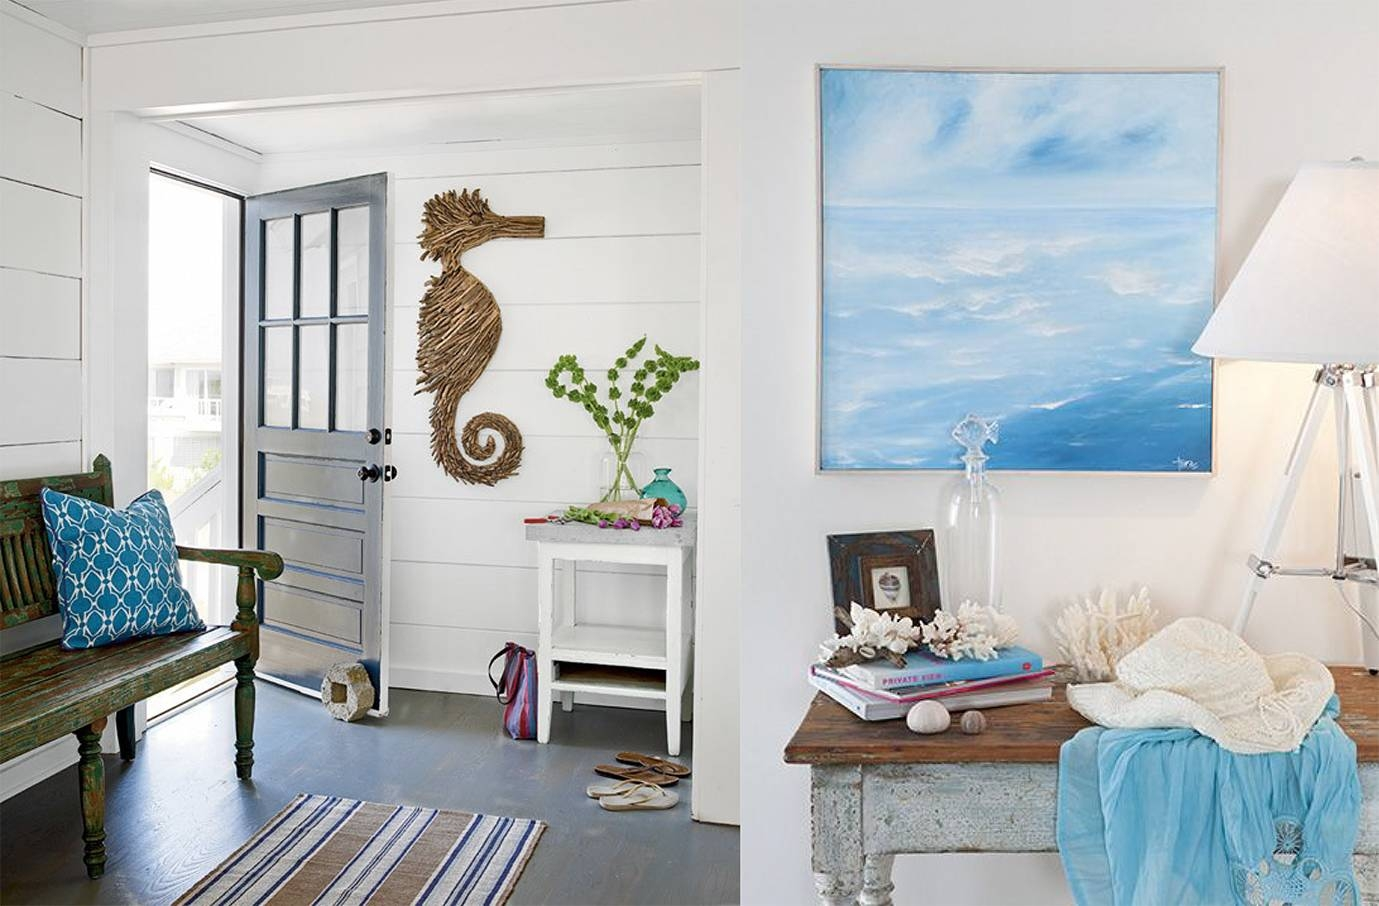 Bring Beach To Your House With Coastal Wall Decor — Unique Intended For Most Recently Released Coastal Wall Art Decor (View 15 of 20)